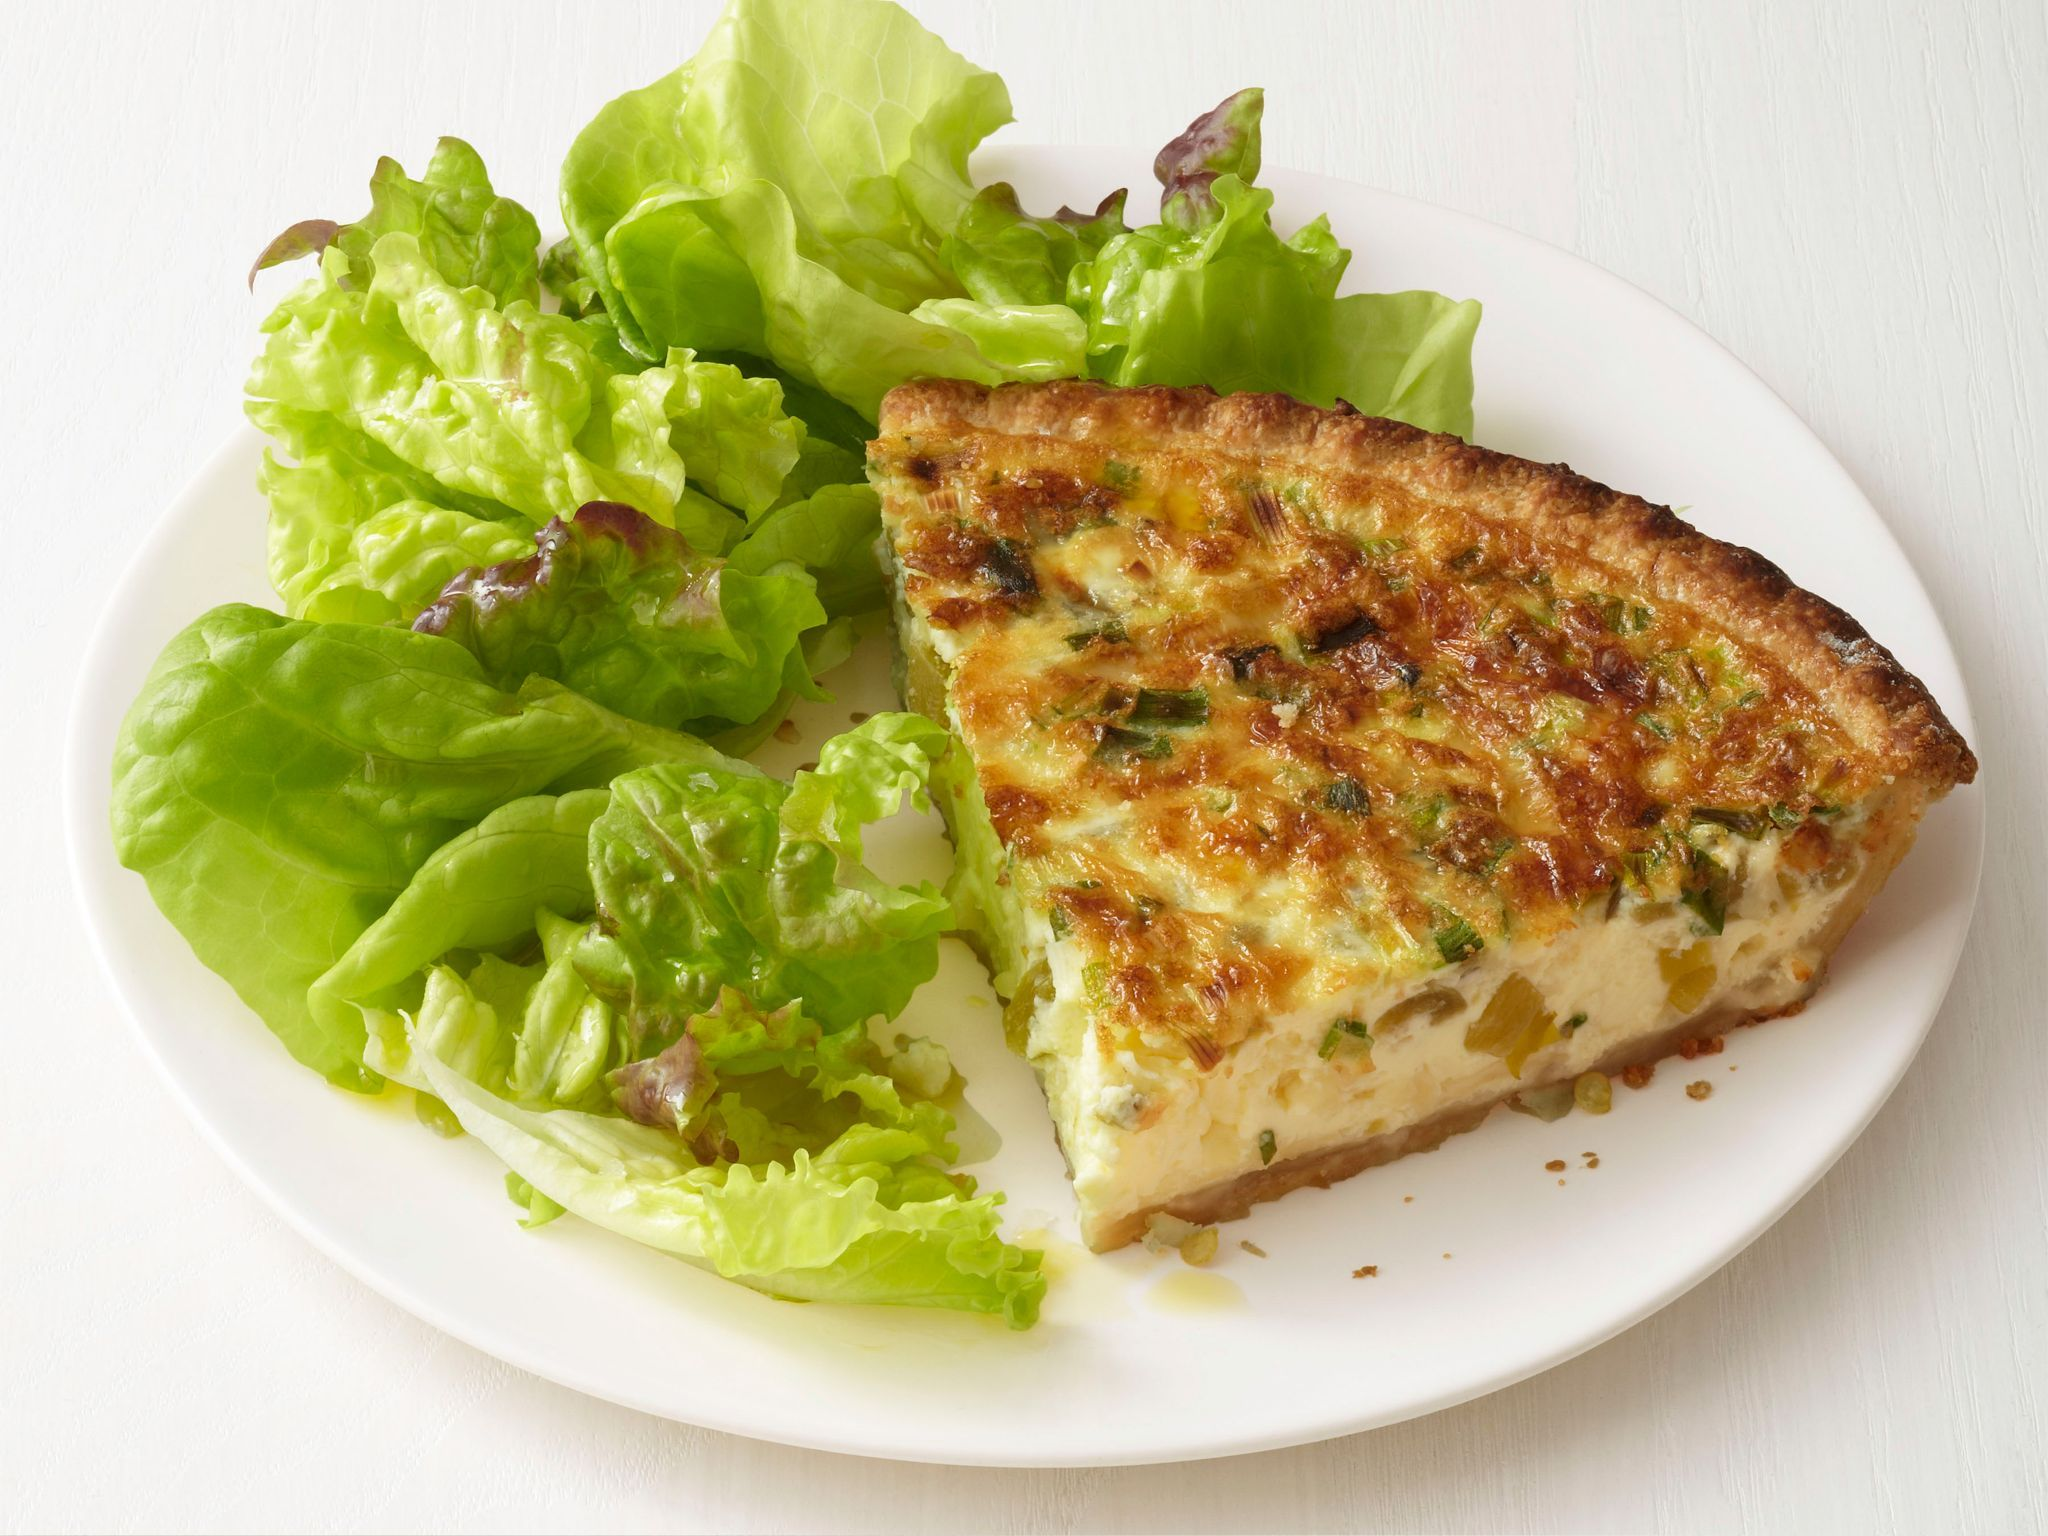 Green chile quiche recipe quiche recipes quiches and food forumfinder Image collections